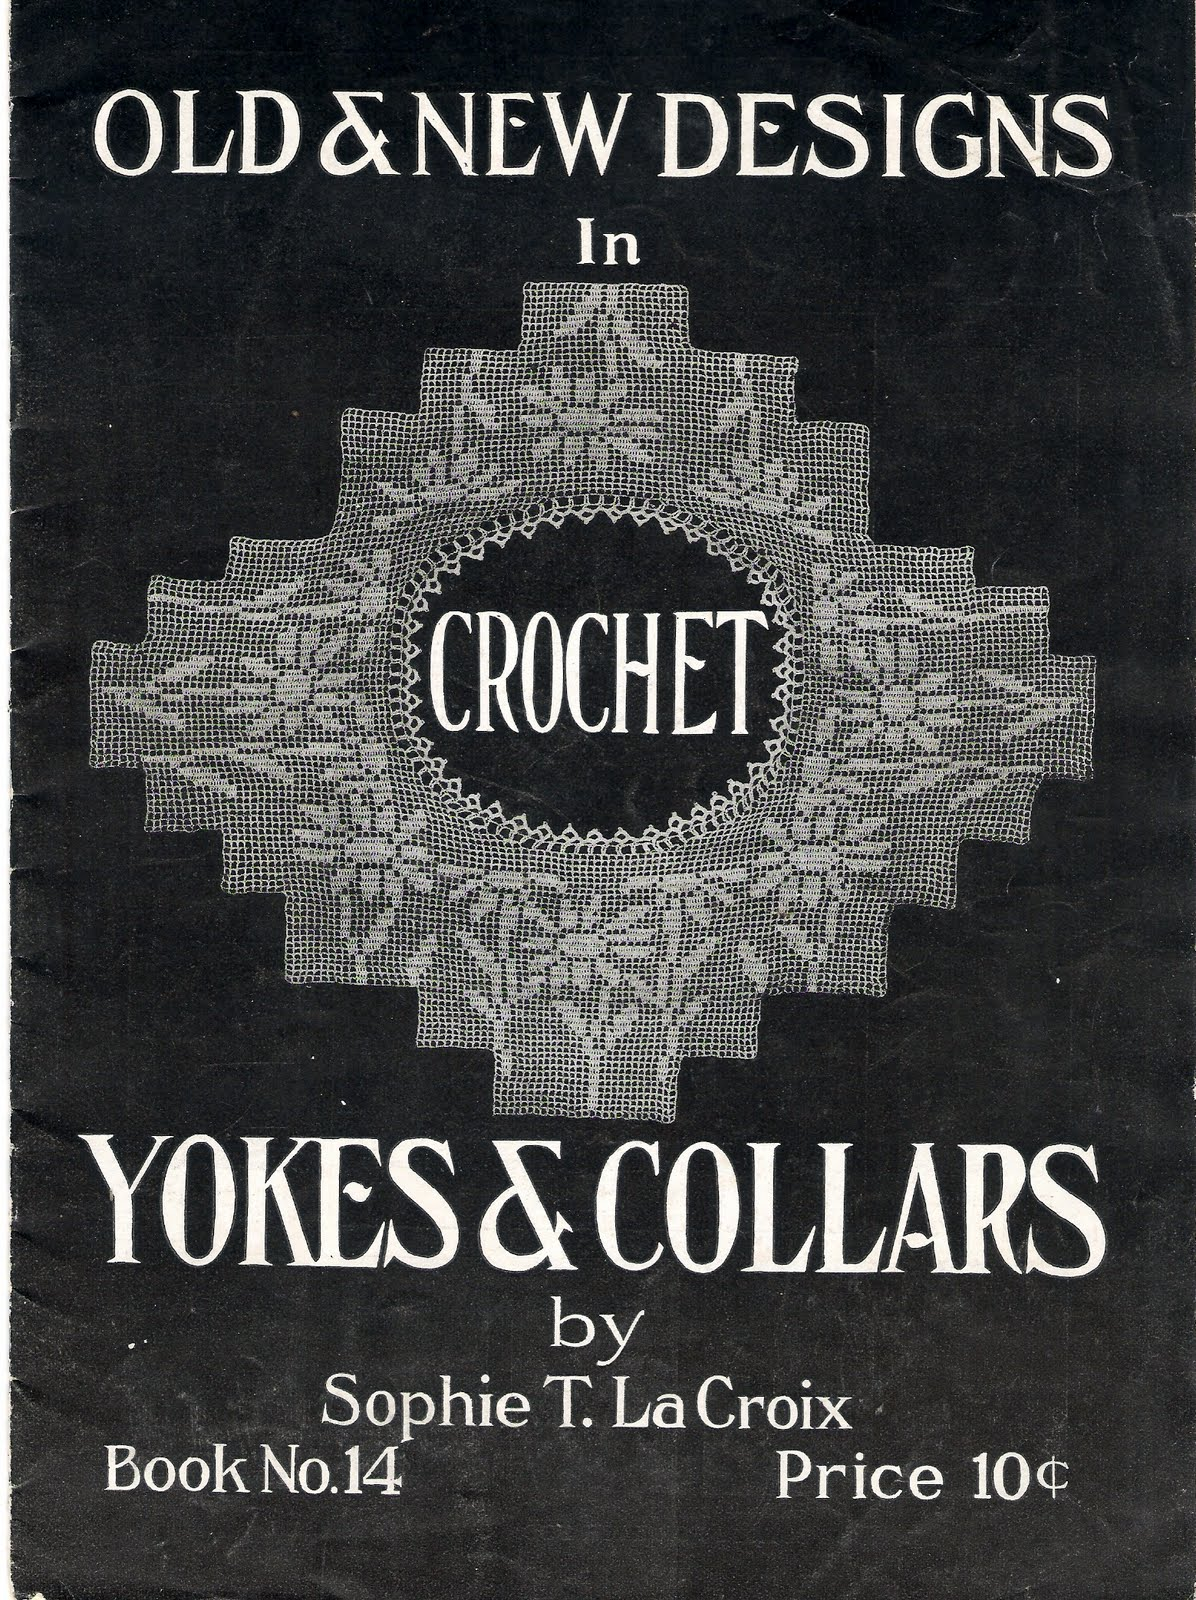 Free Pattern 1910's Crochet - Designs in Crochet Yokes and Collars